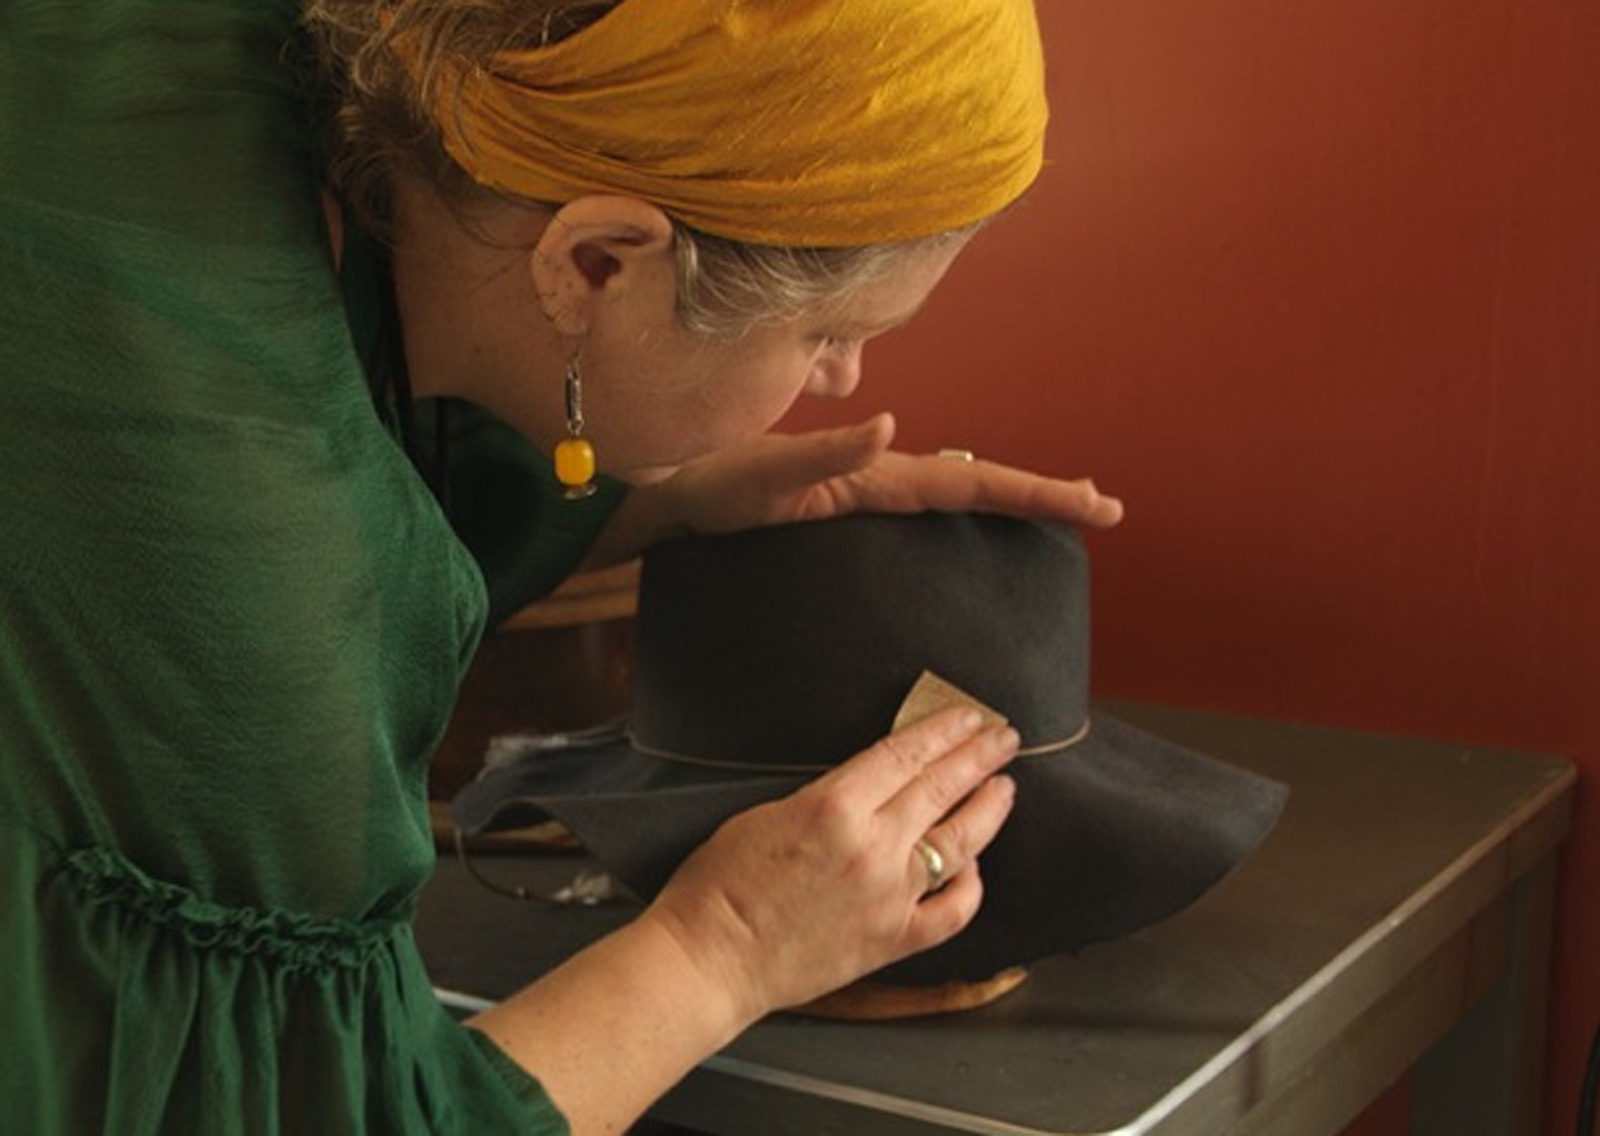 MStyle: Deanna Gibbons Makes Hats